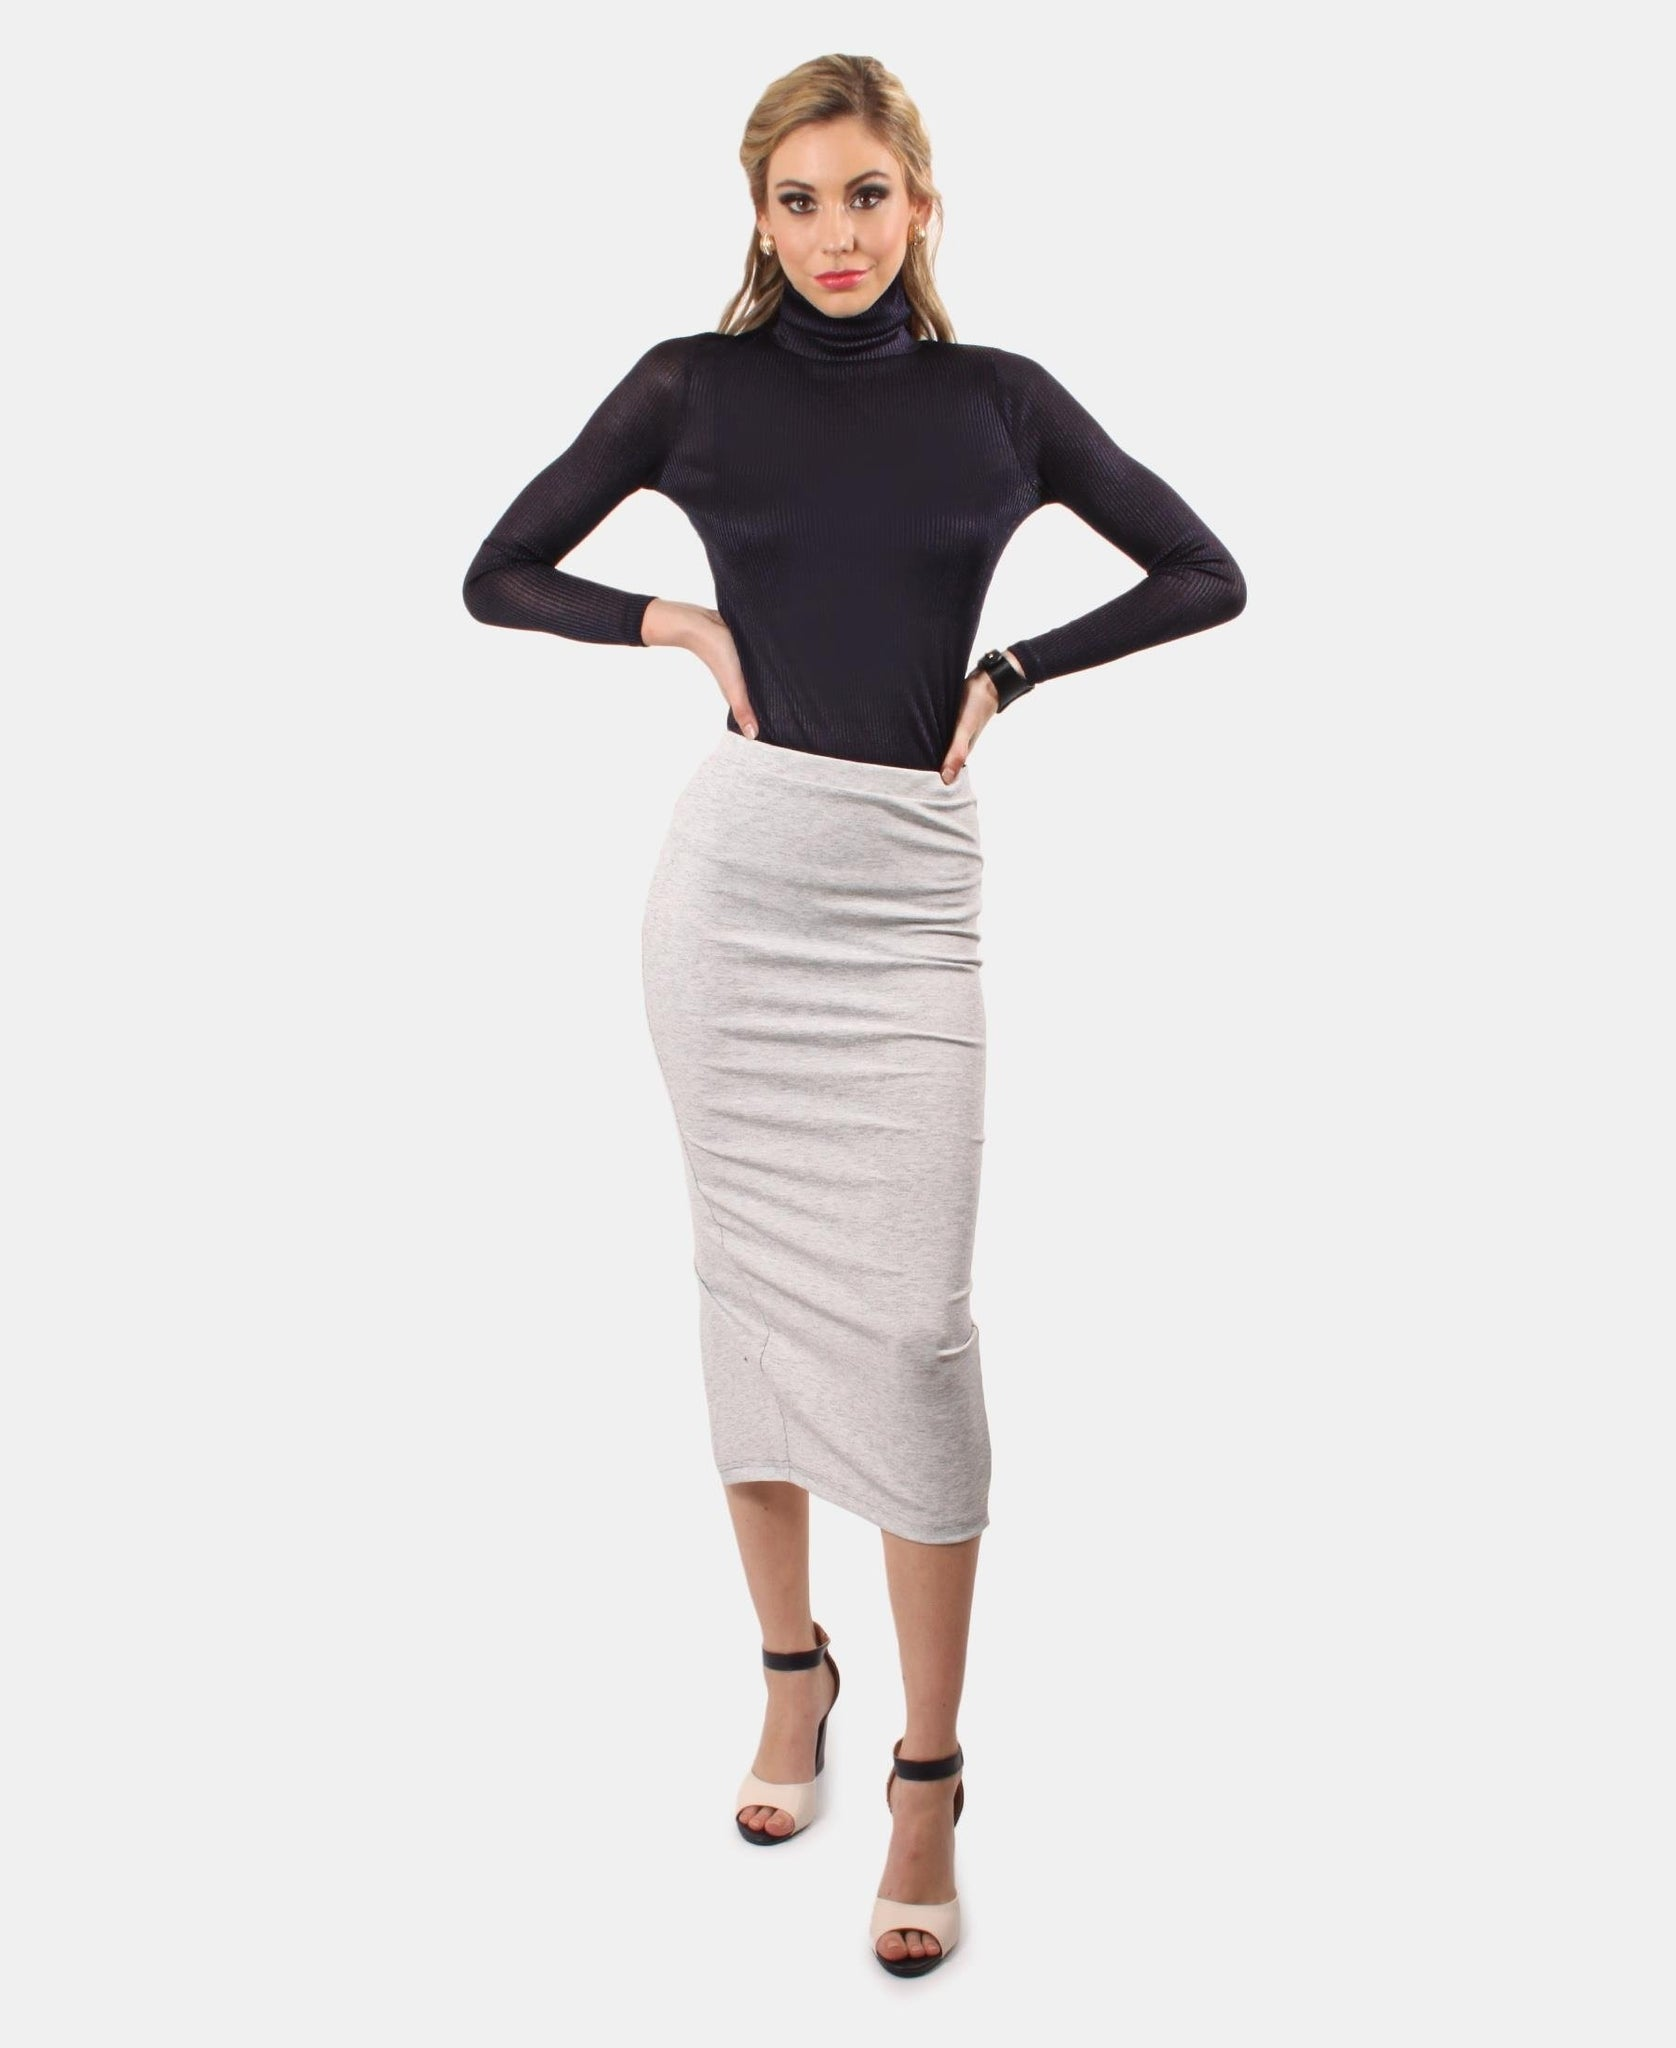 High Waisted Slinky Back Slit Skirt - Grey